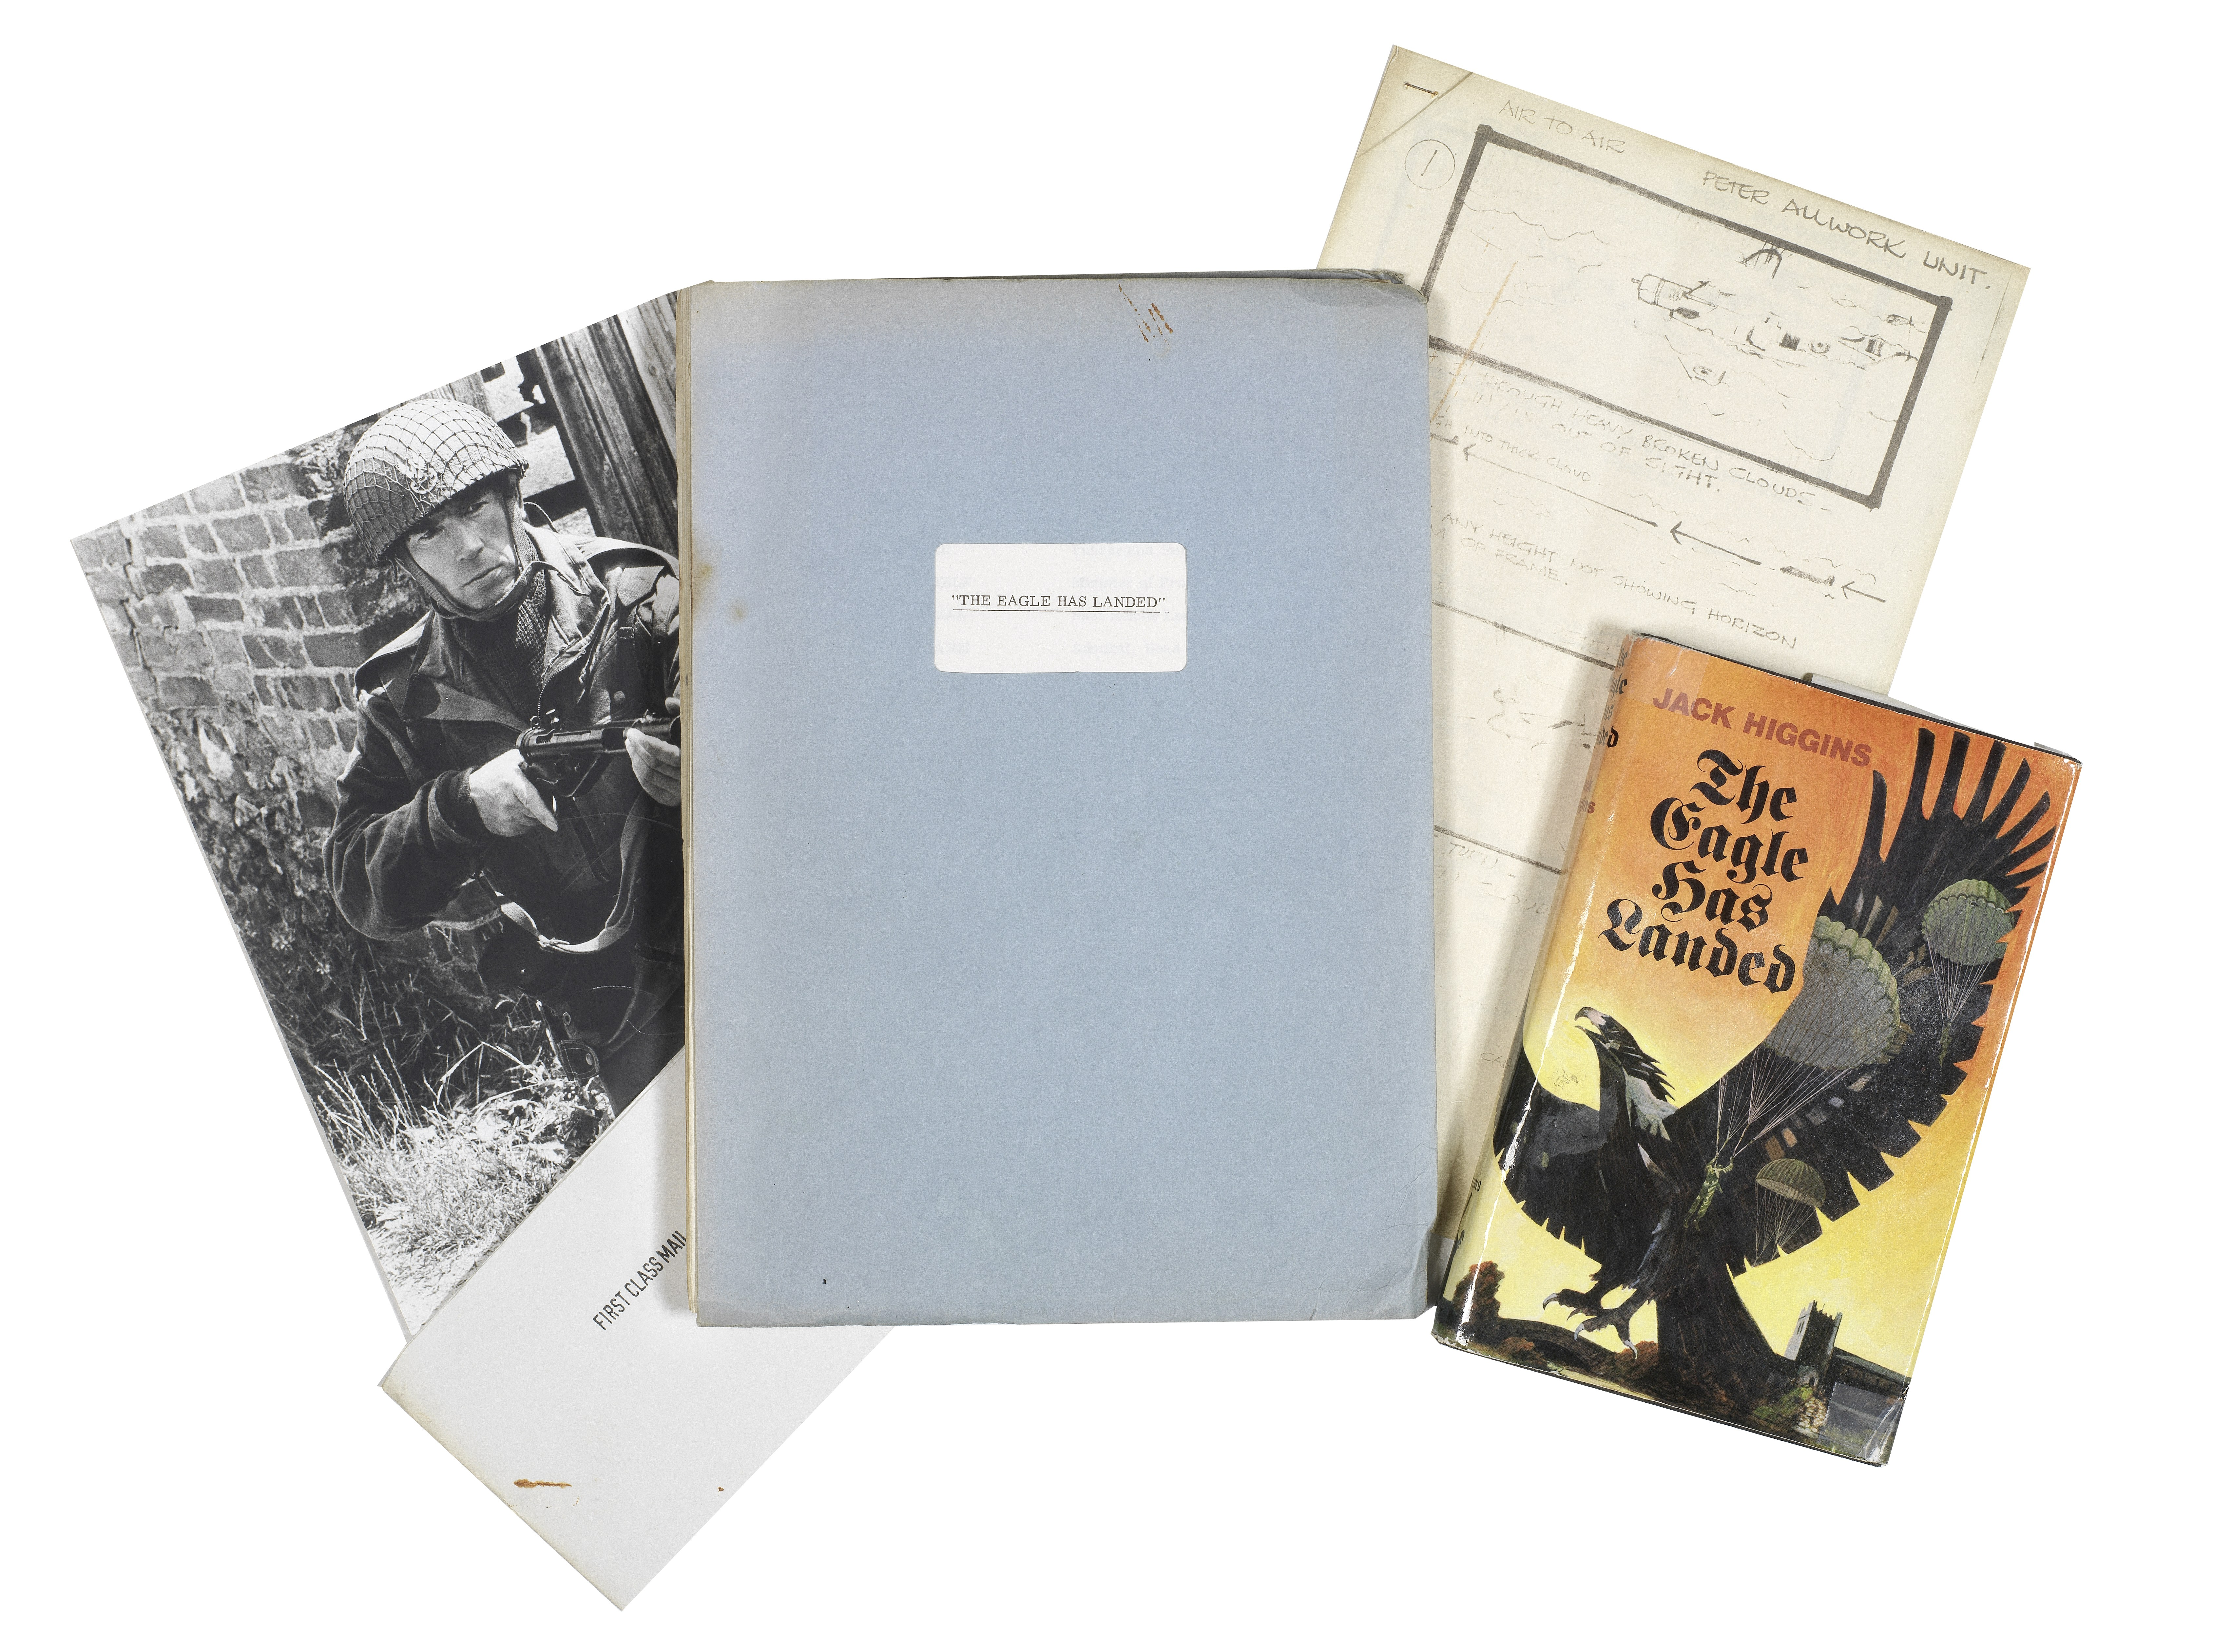 Lot 19 - The Eagle Has Landed: A screenplay script for the film and related memorabilia, 1976, Qty